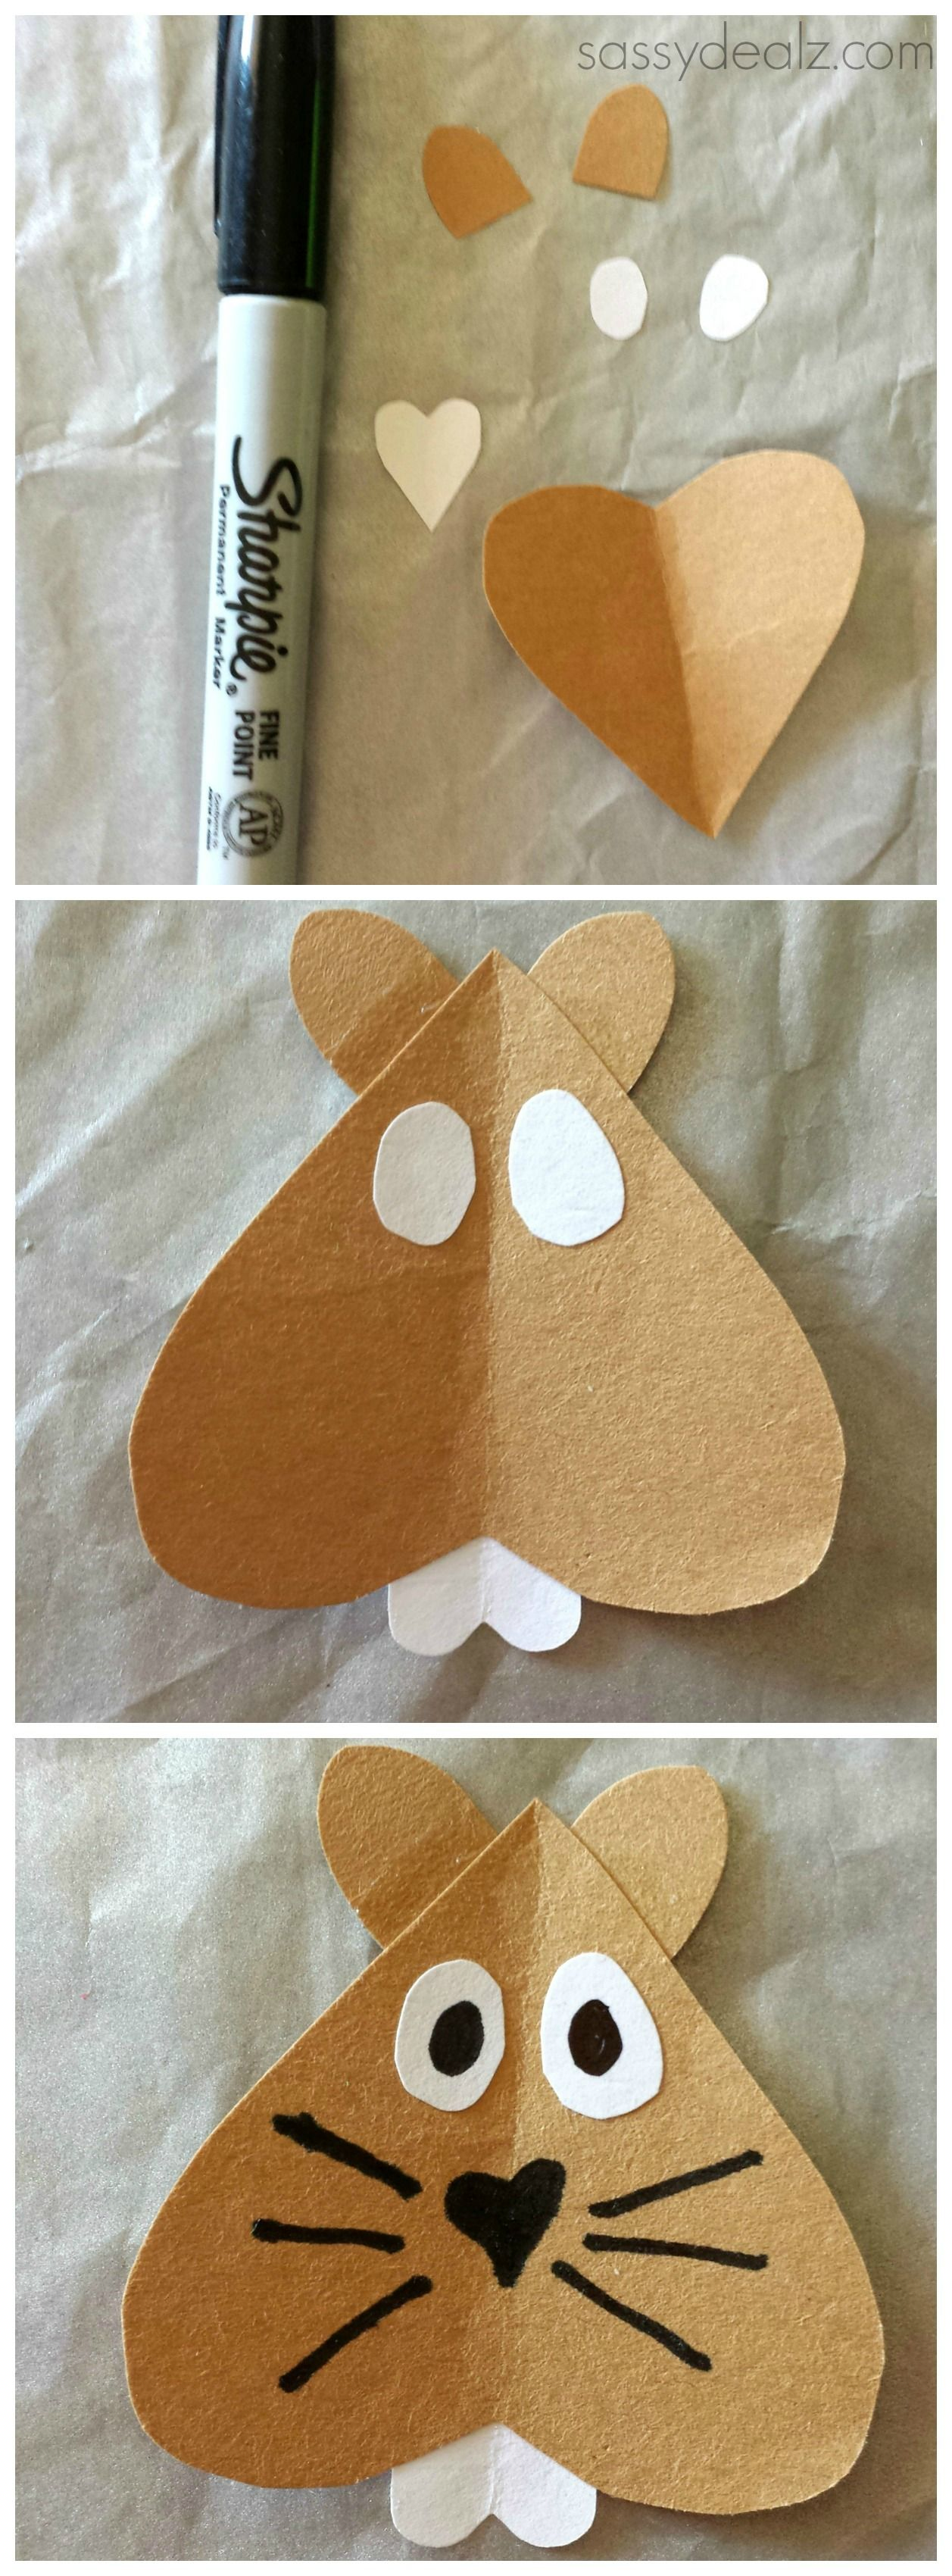 Groundhogs Day Toilet Paper Roll Craft For Kids With